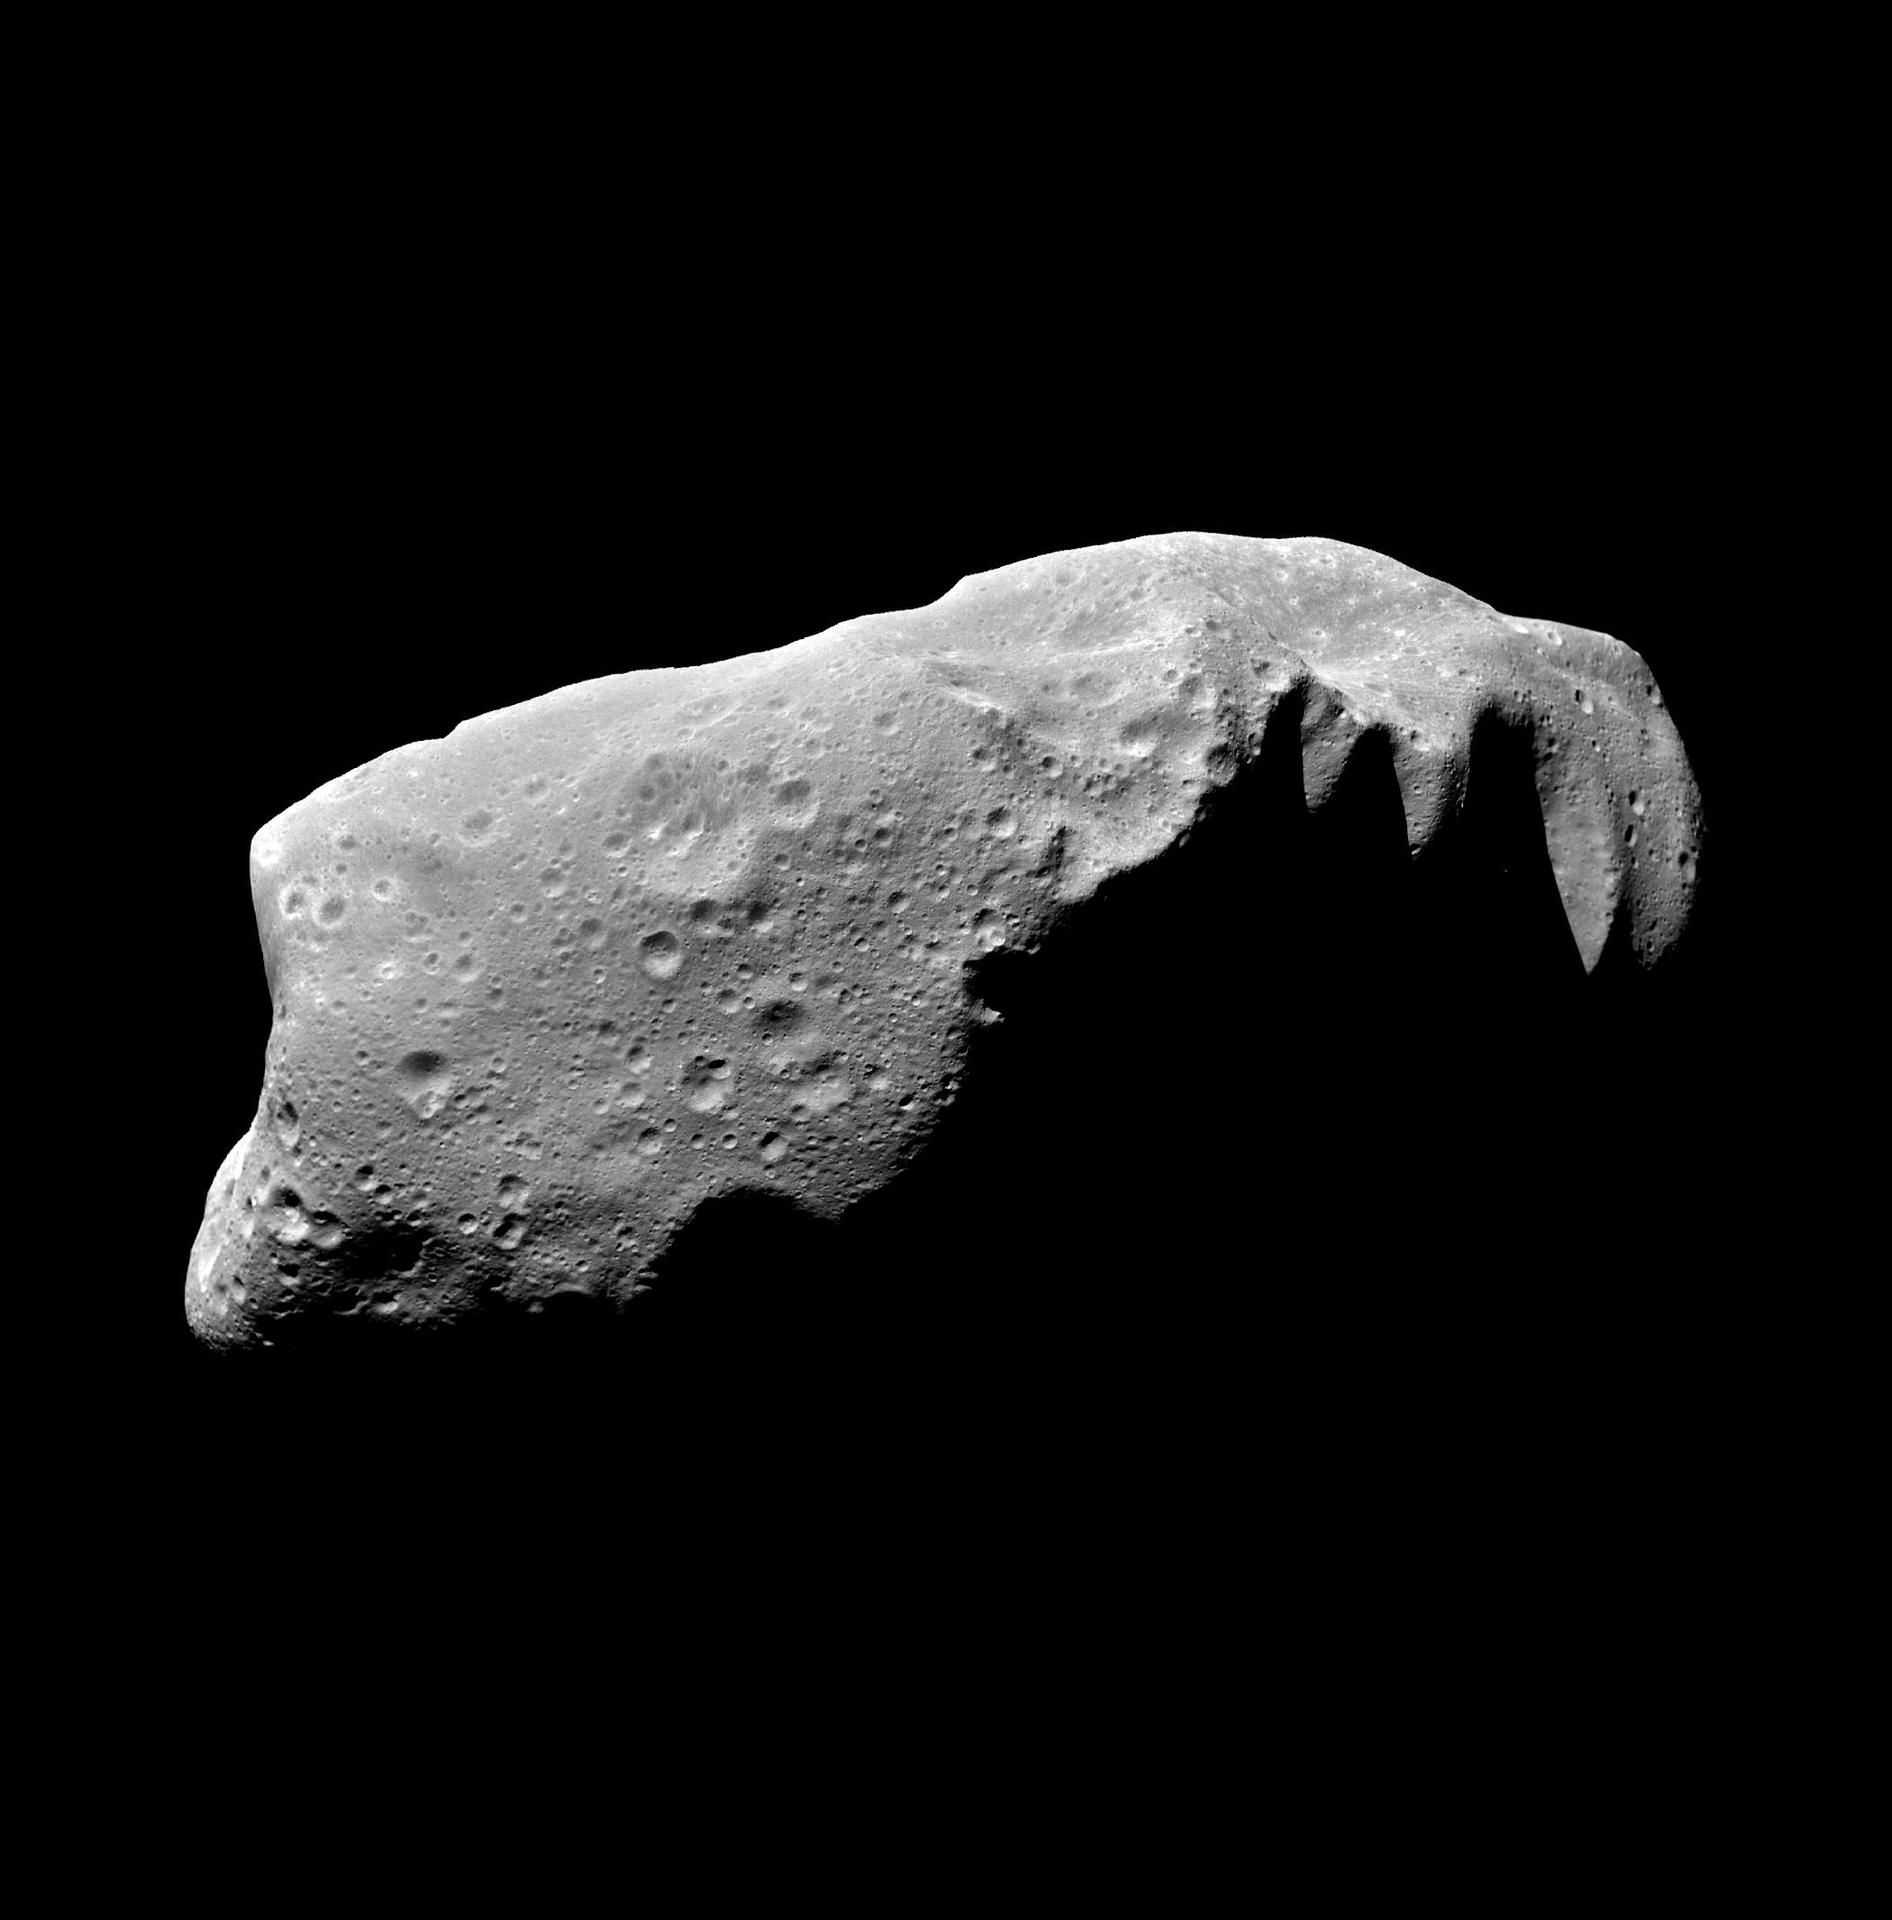 An asteroid skimmed Earth while you were asleep